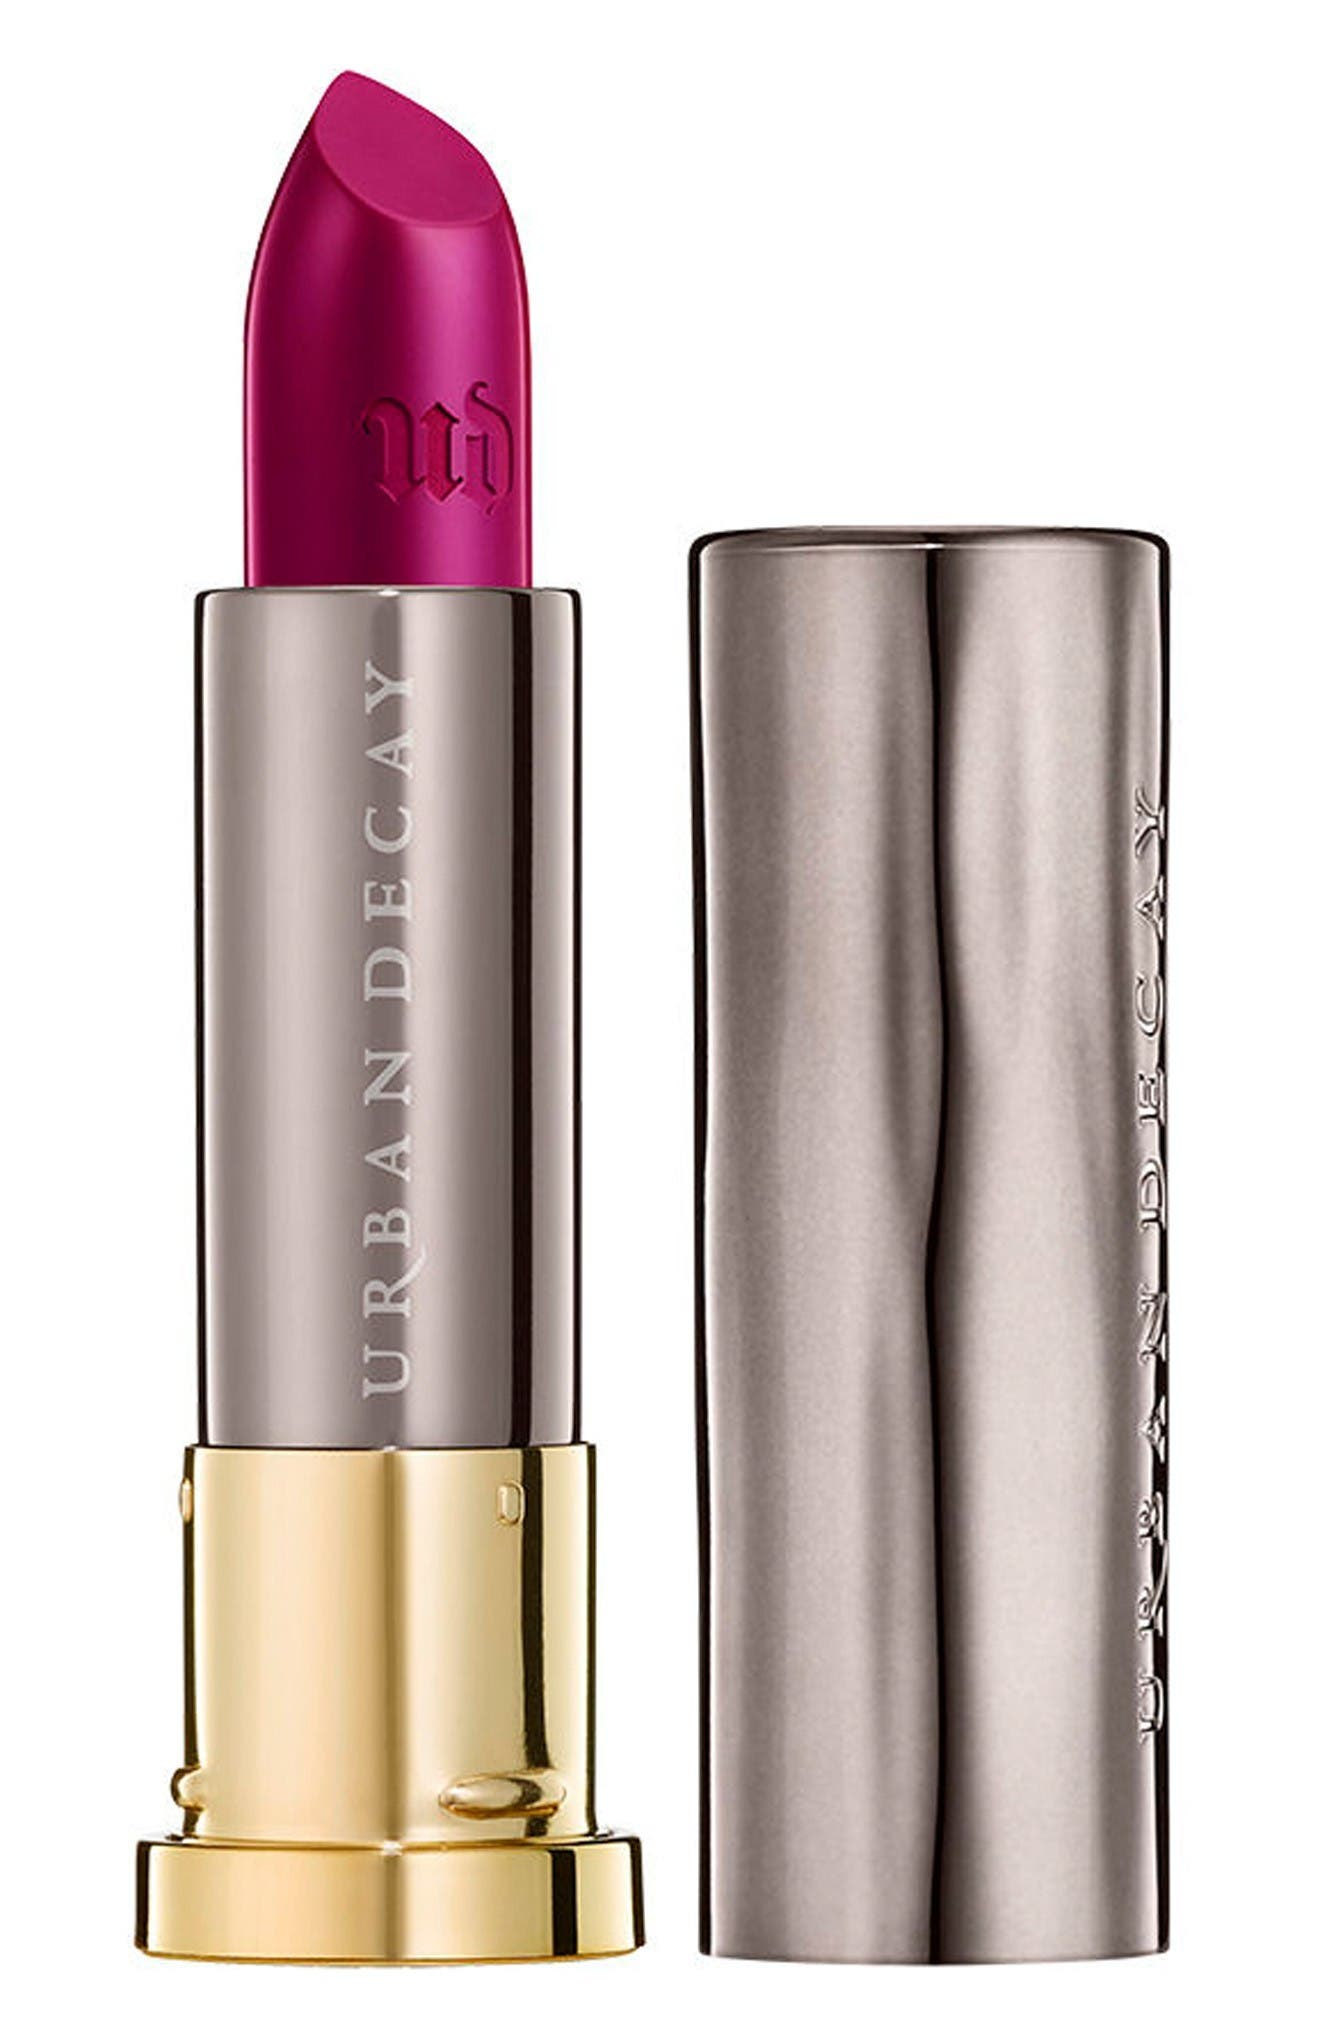 Alternate Image 2  - Urban Decay The Ultimate Pair Firebird & Jilted Lipstick & Pencil Duo ($37 Value)